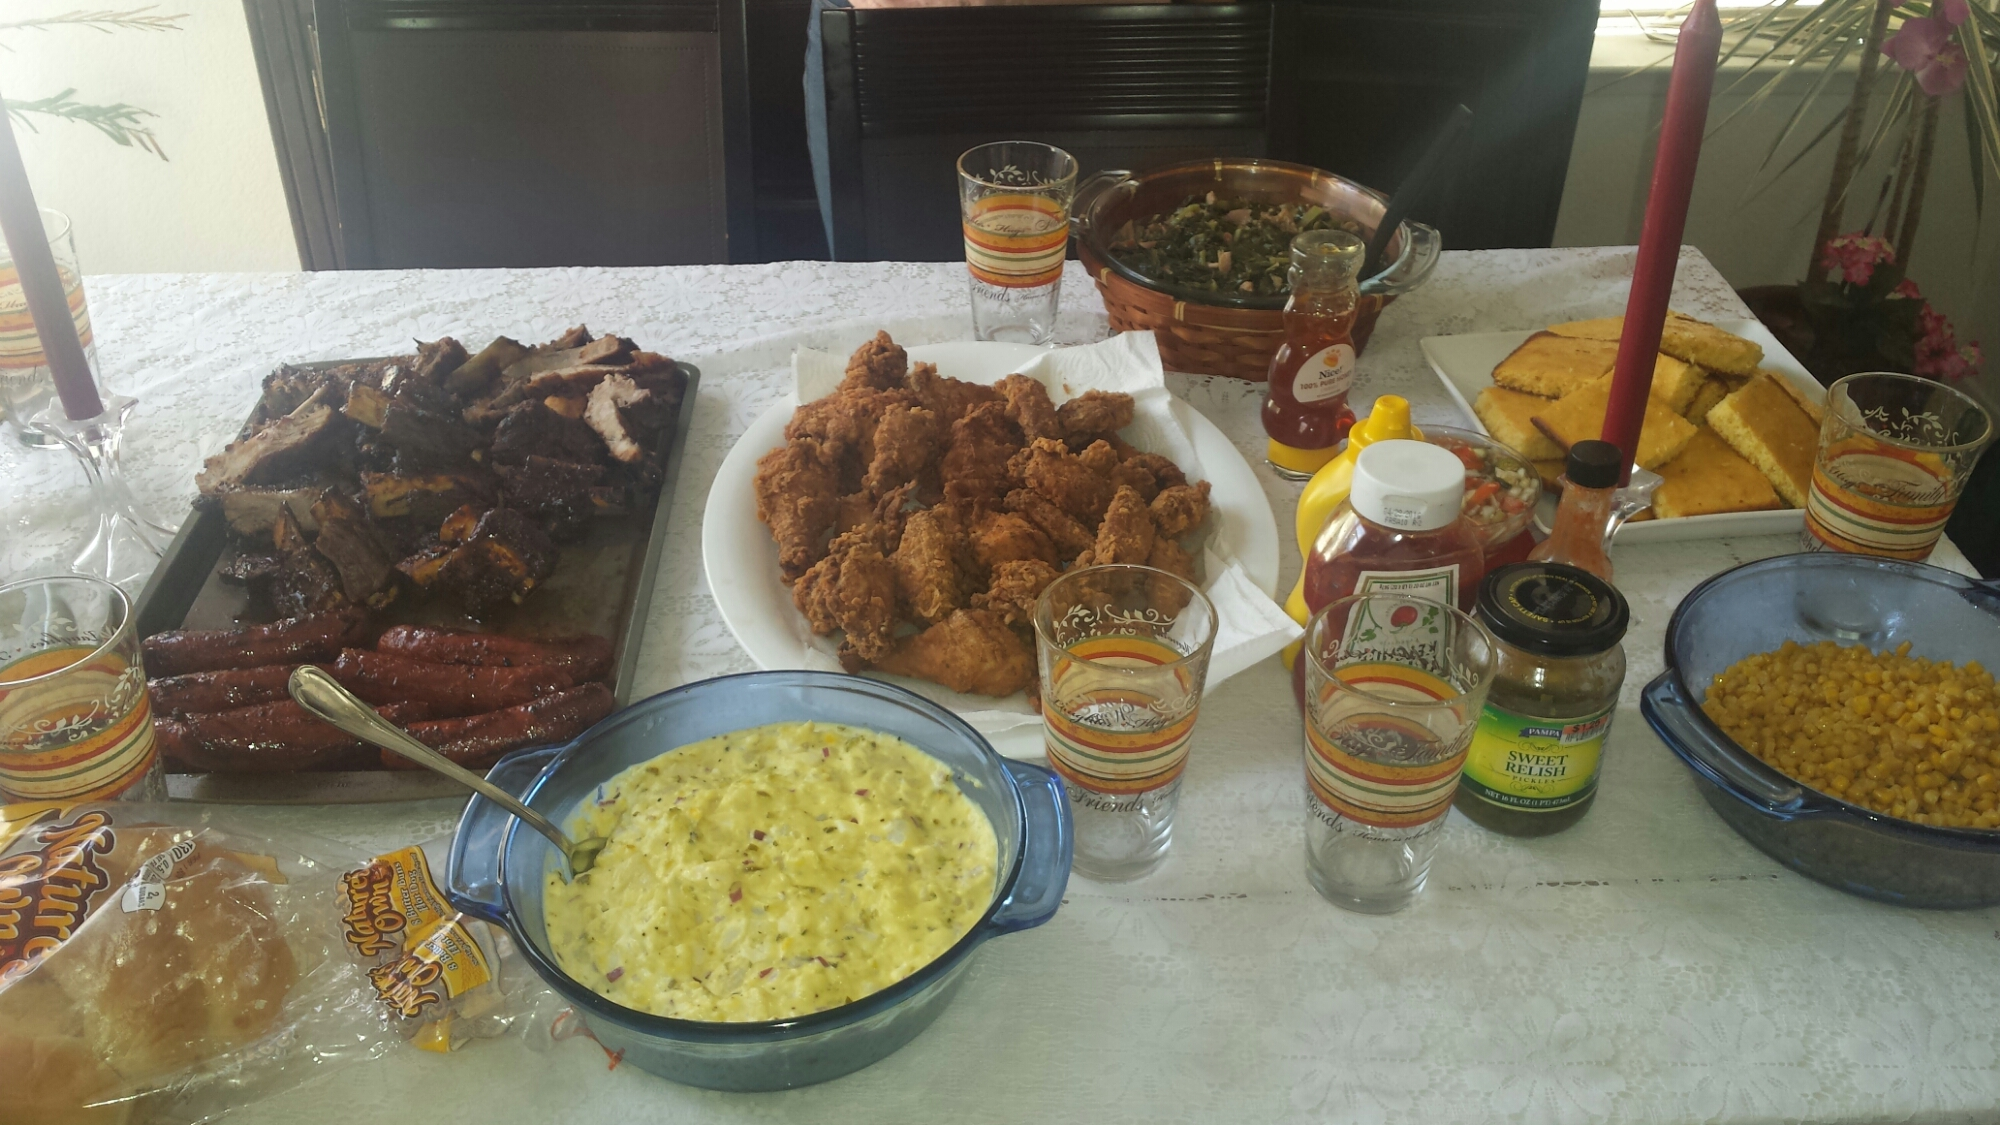 Pork ribs, beef ribs, potato salad, fried chicken, hotlinks collard greens